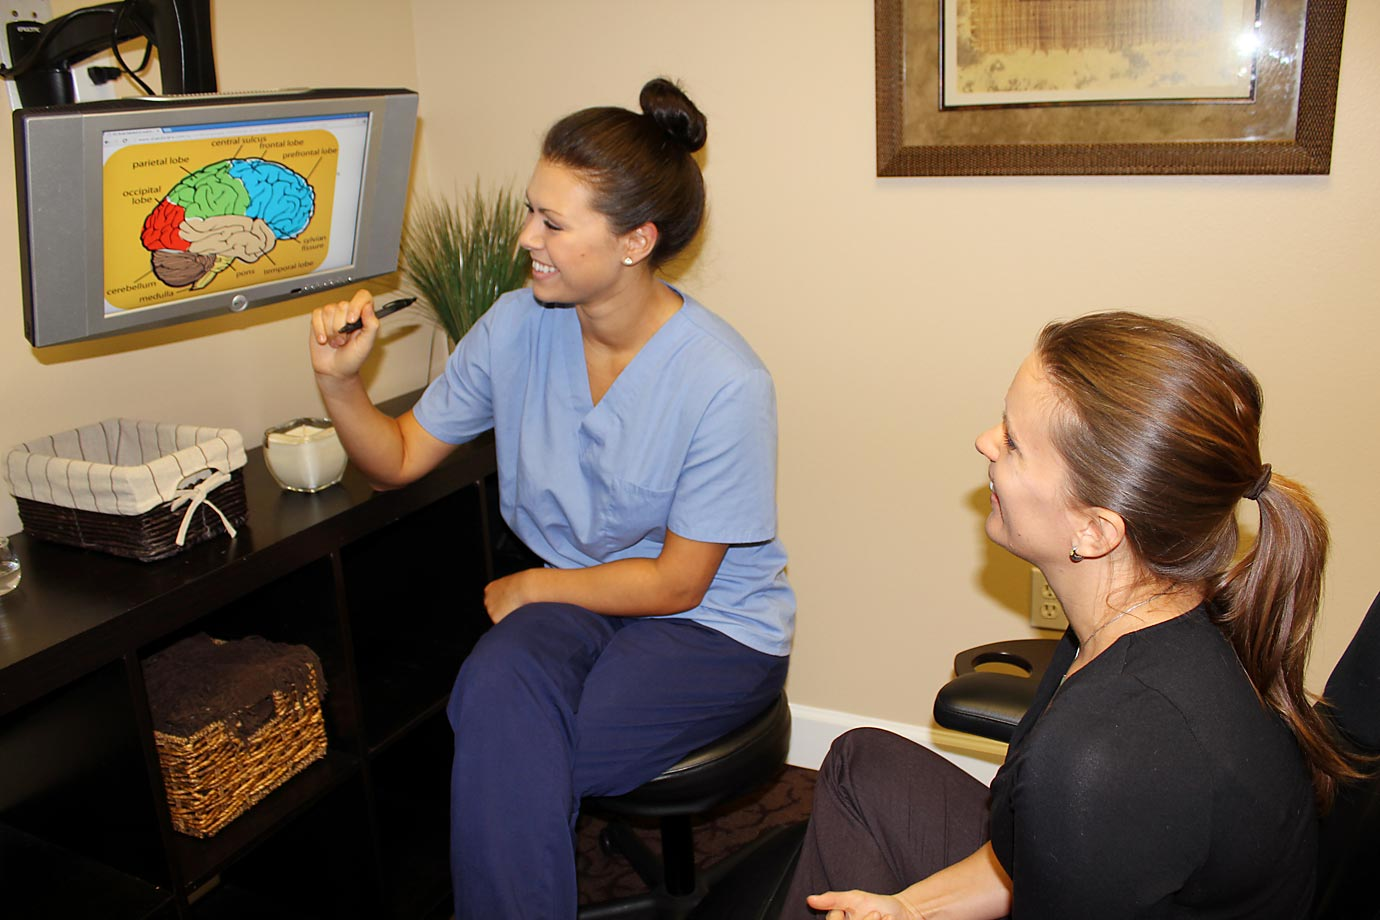 As a neurotherapist, Alexa works with patients to strengthen areas of their brain by monitoring their brain activity.